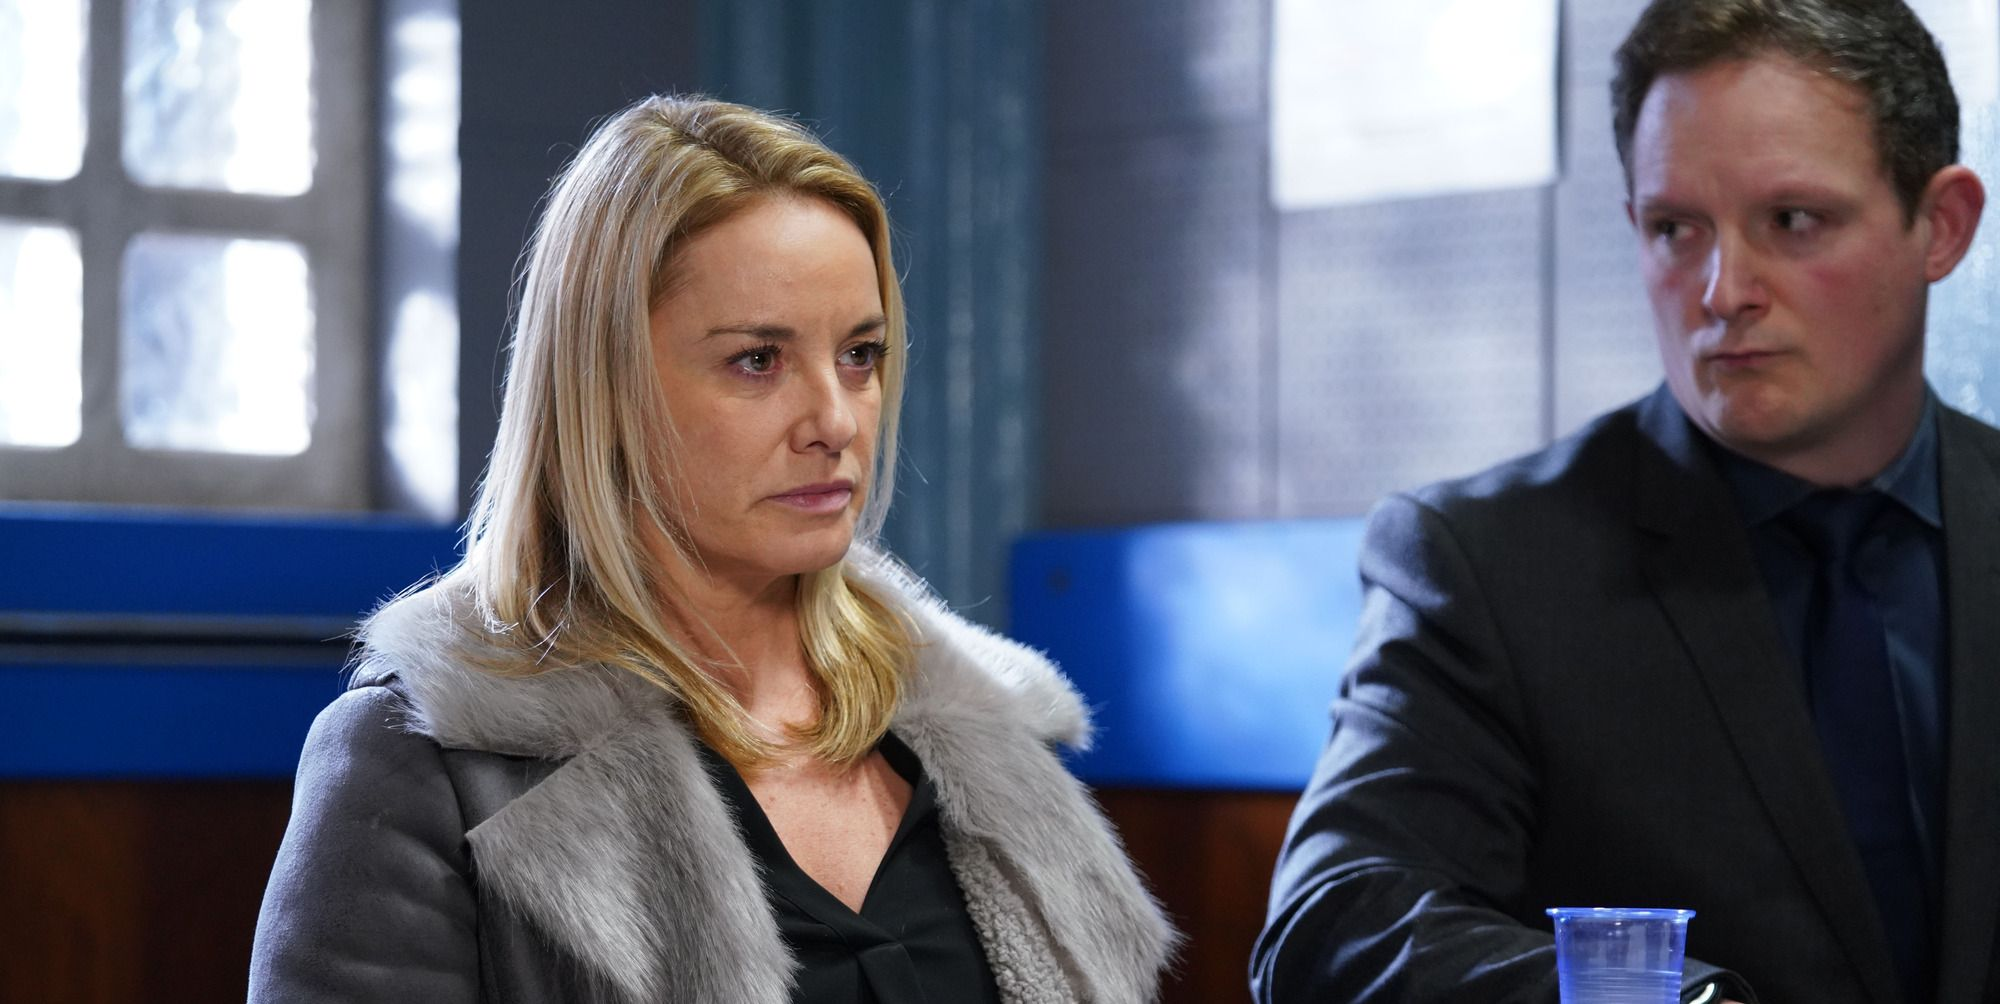 Mel Owen is questioned by the police in EastEnders